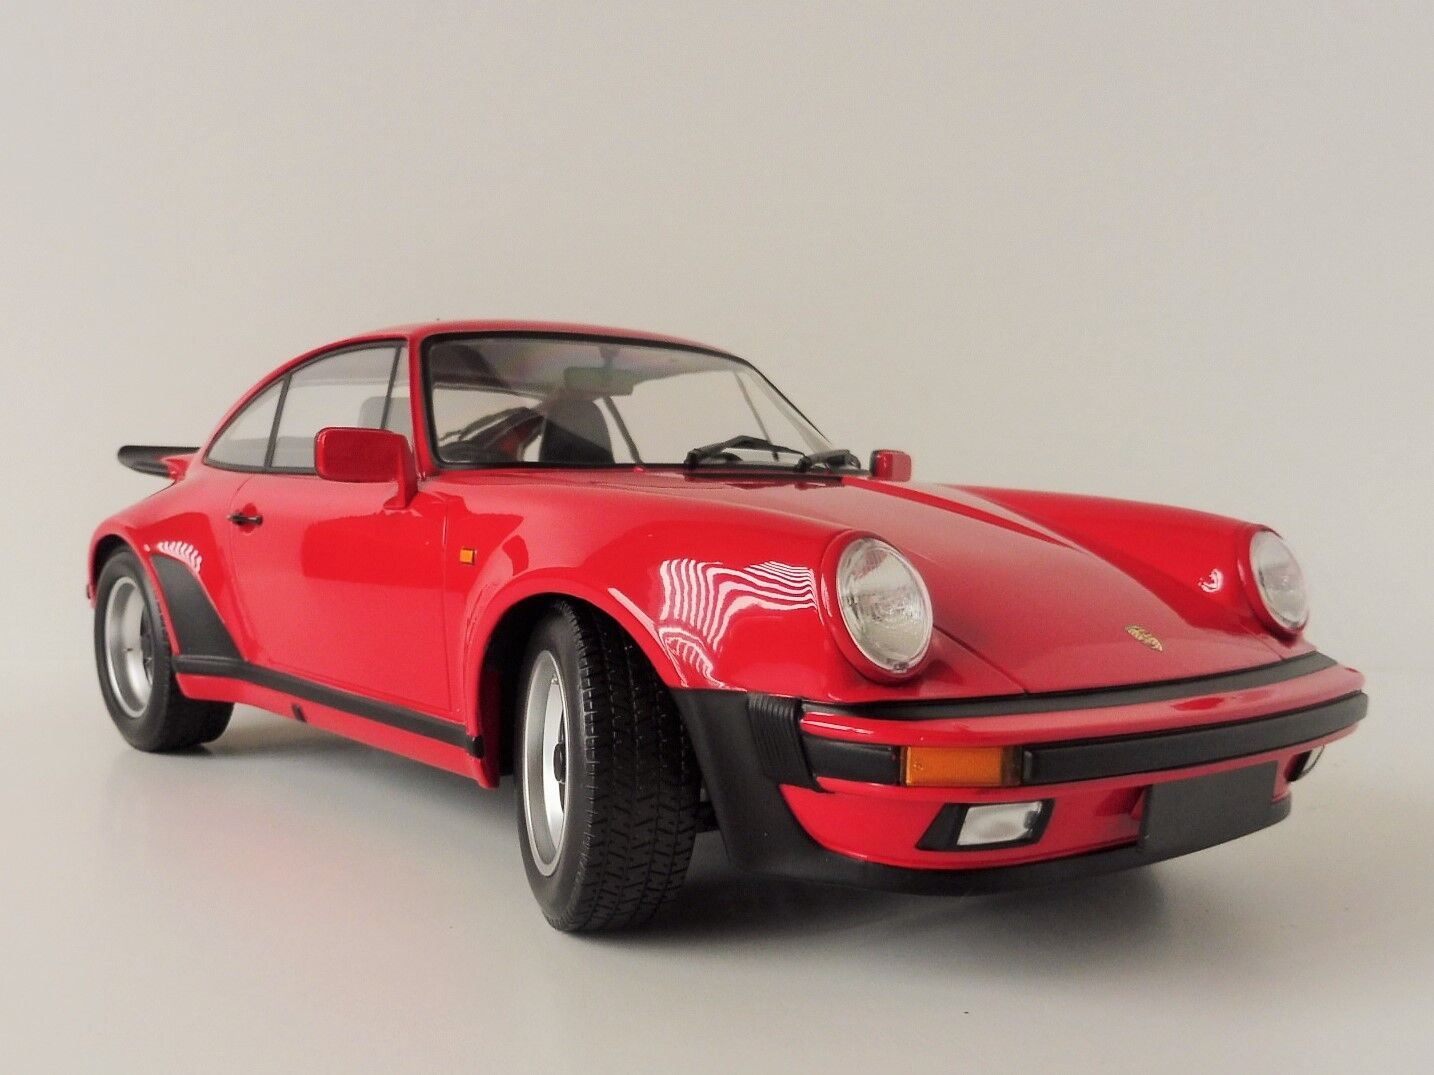 Porsche 911 Turbo 1977 Strawberry Strawberry Strawberry Red 1 12 Minichamps 1250661115 b30094